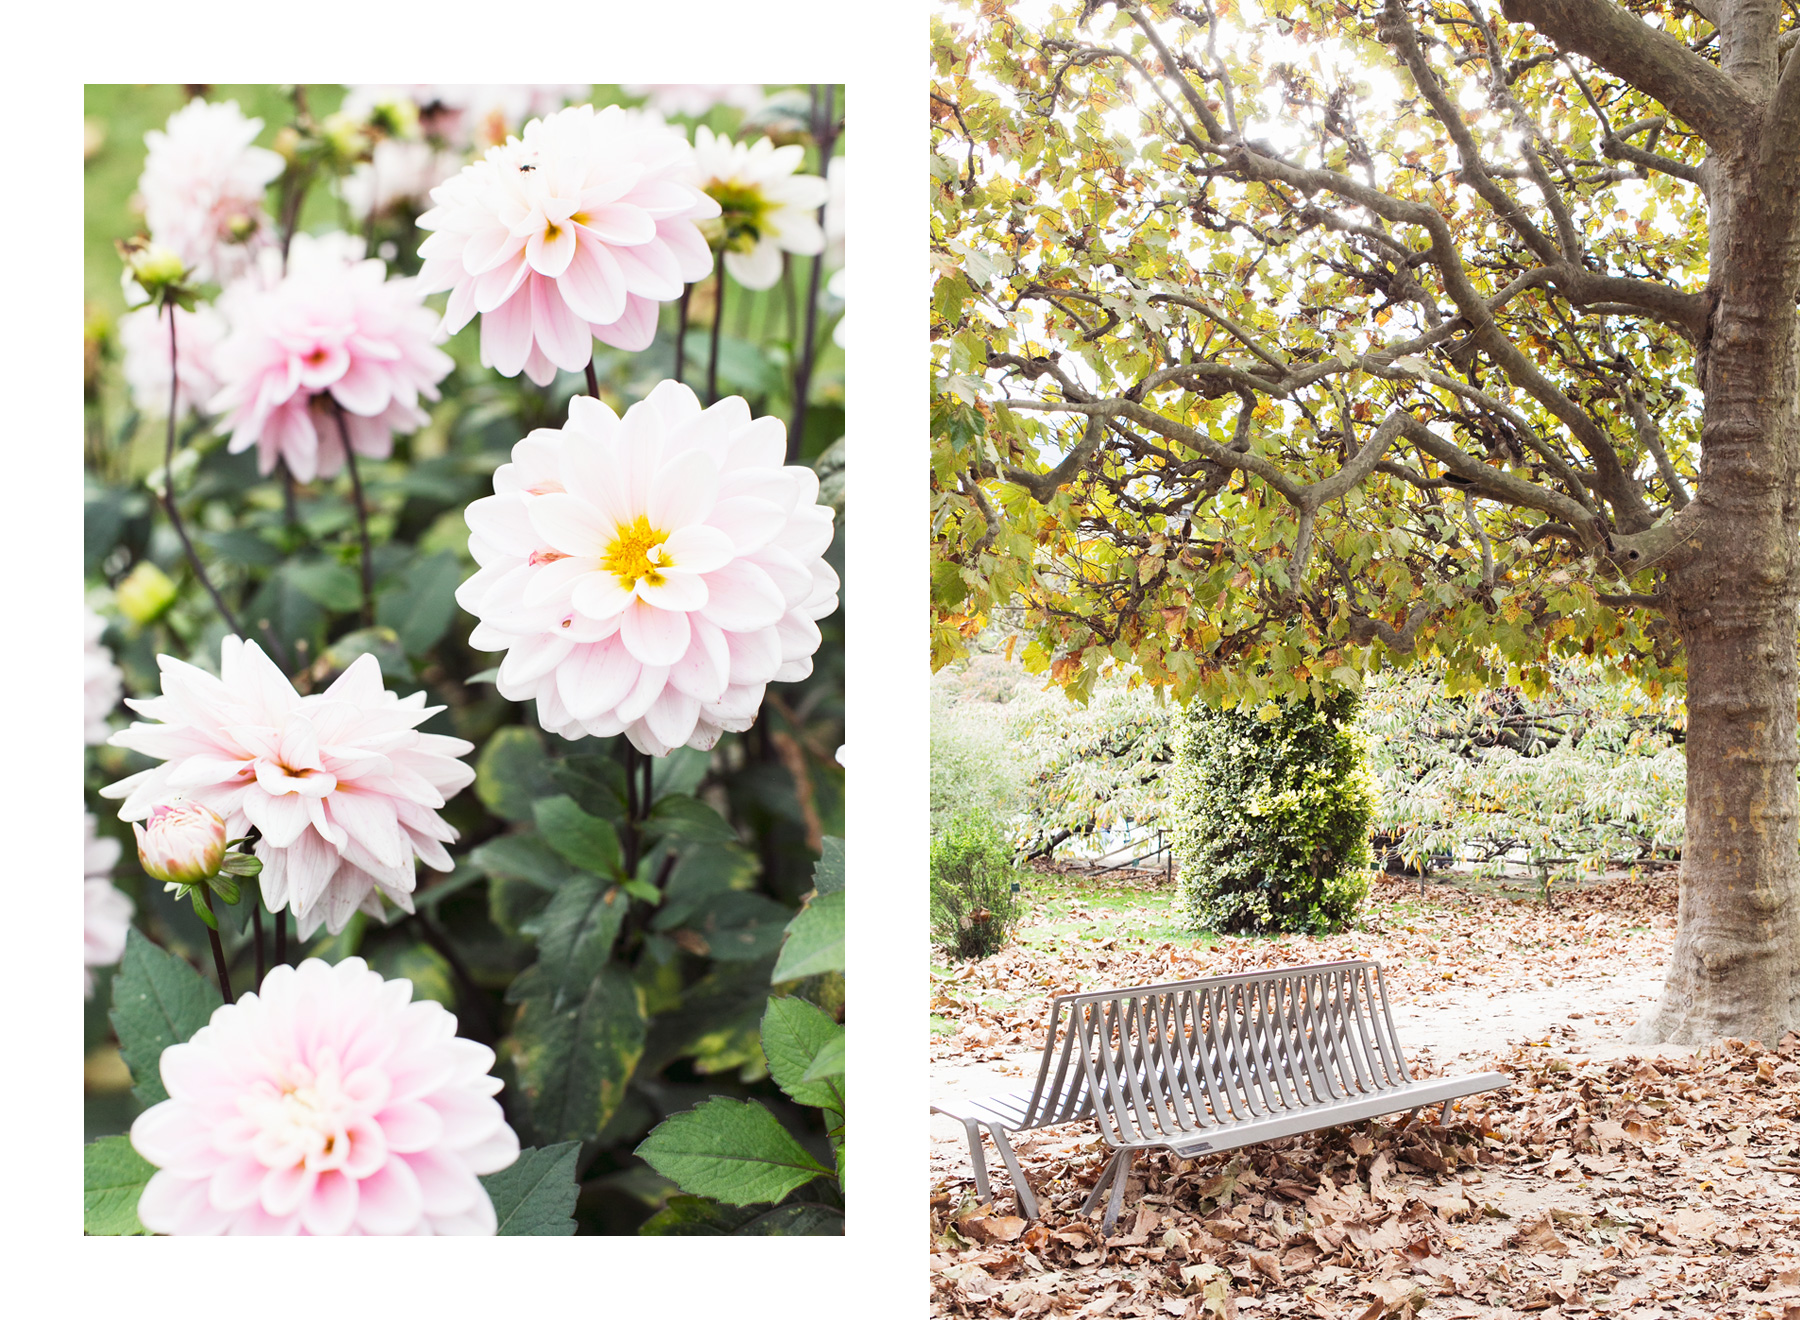 Jardin des Plantes by Carin Olsson (Paris in Four Months)